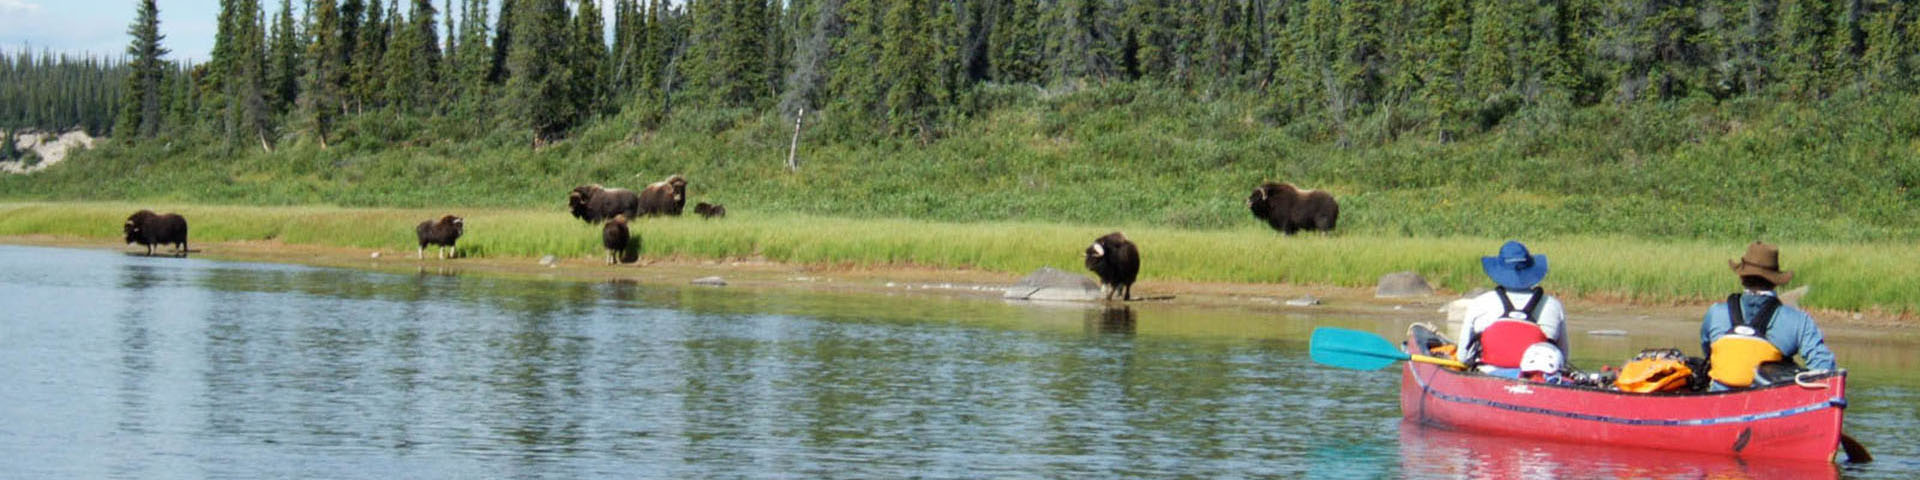 Coppermine River Canoe Trip by Black Feather - Image 110